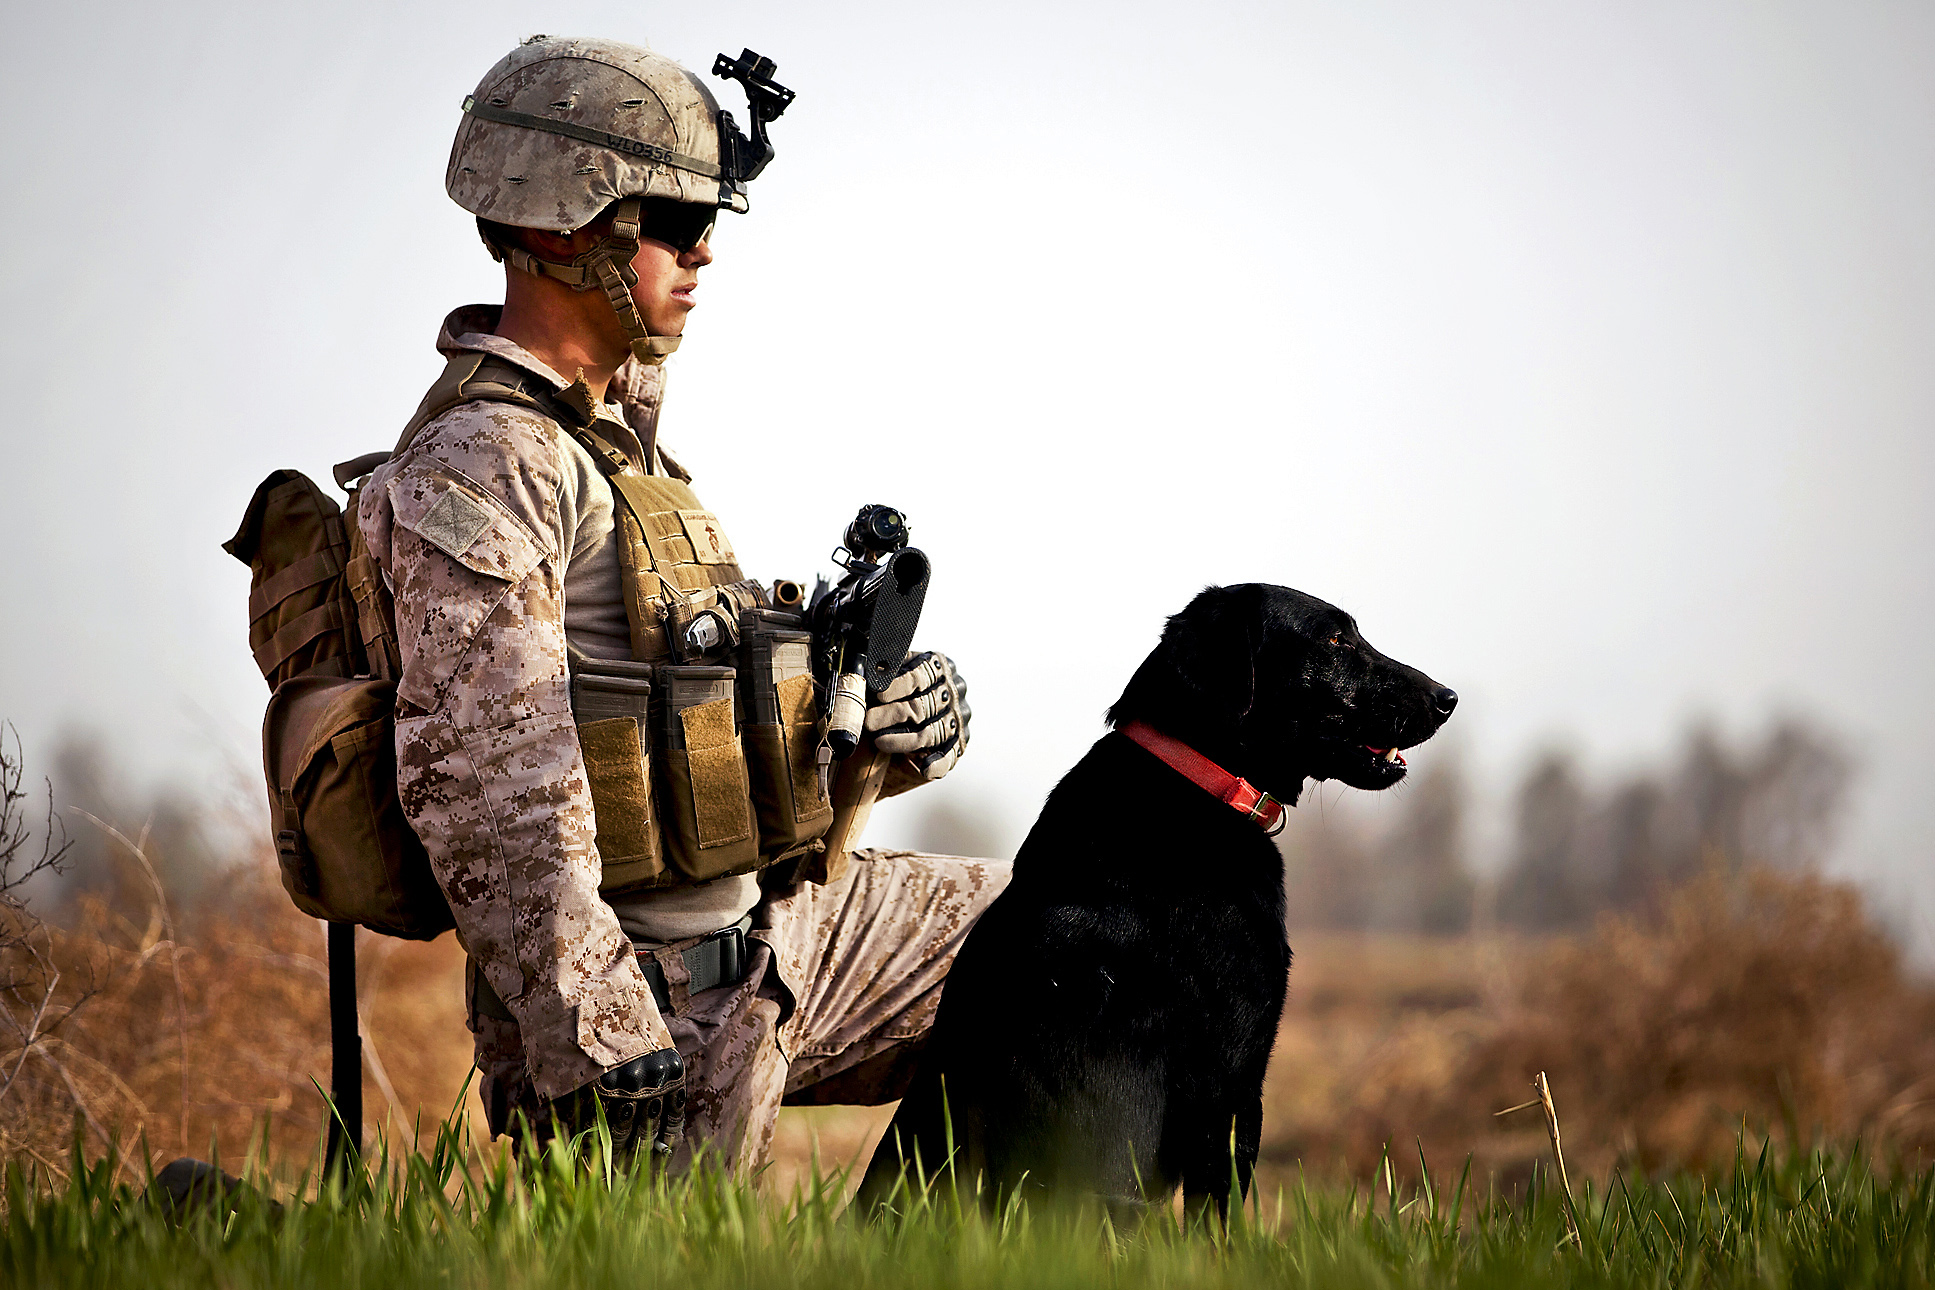 COMMON BARRIERS VETERANS EXPERIENCE AND HOW DOGS CAN HELP